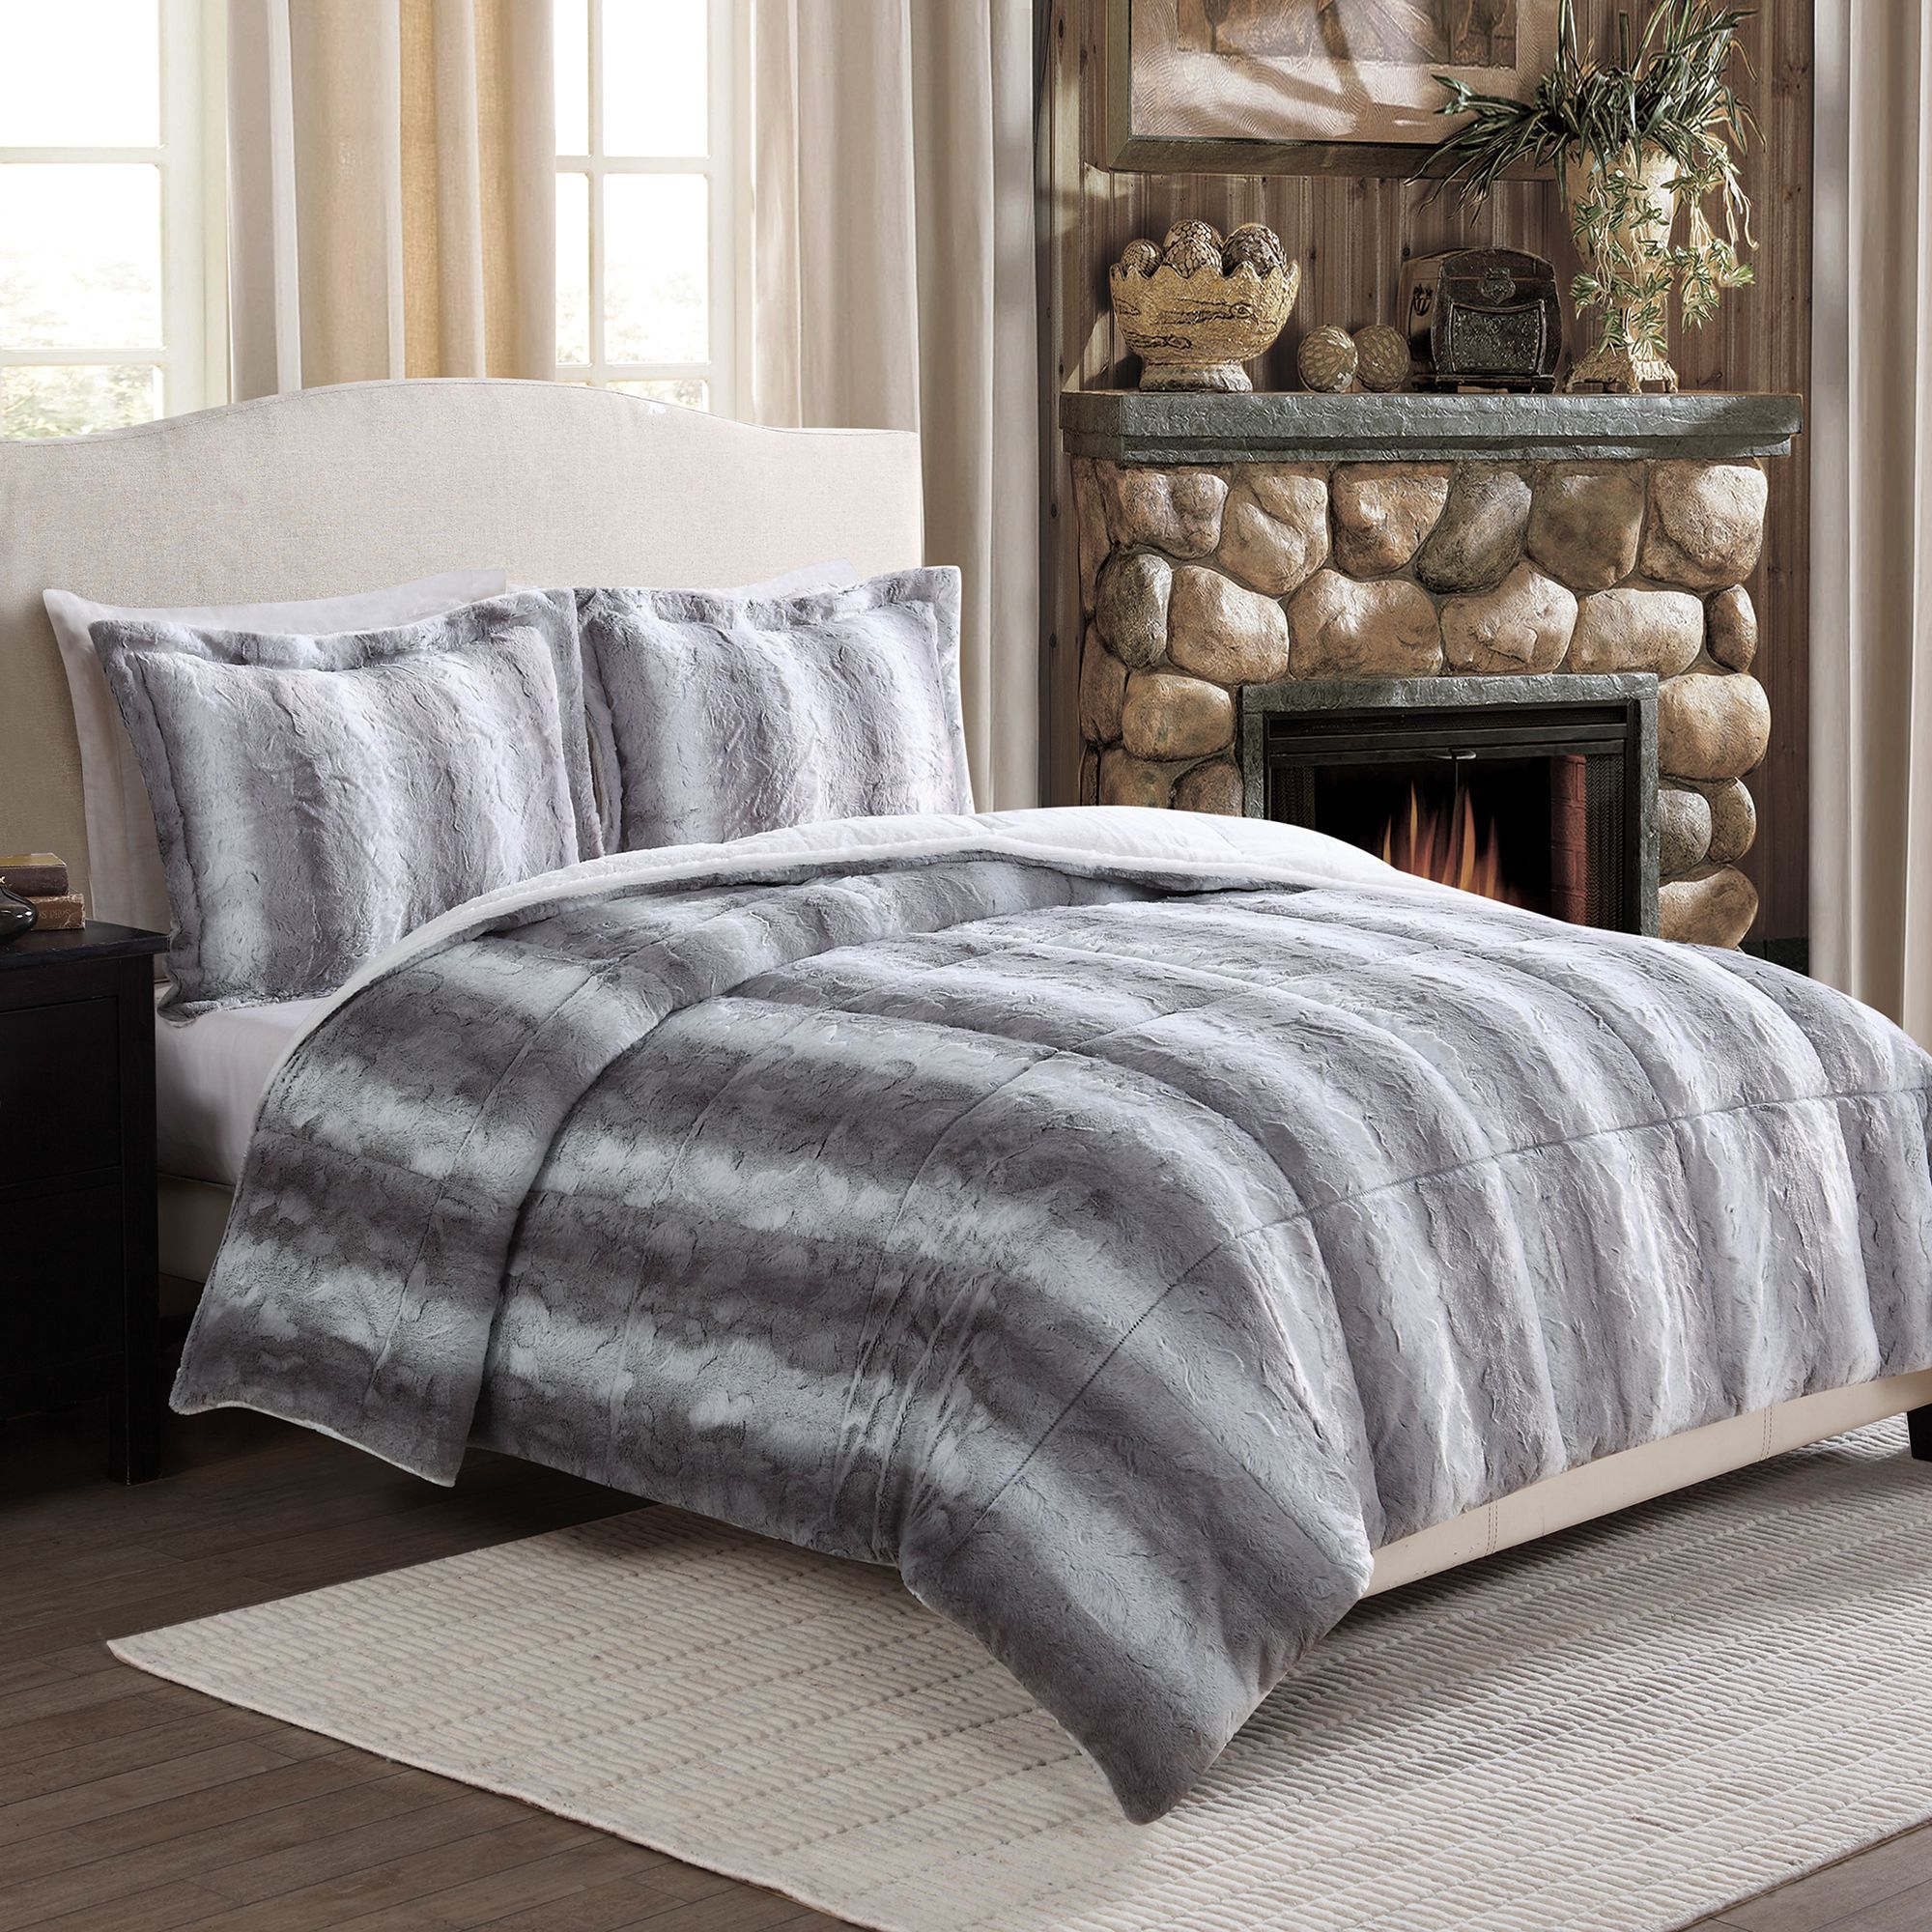 piece jacquard c fuzzy for more sheets comforters northern pillows the reversible set home mlpu qvc bedding n nights com comforter queen